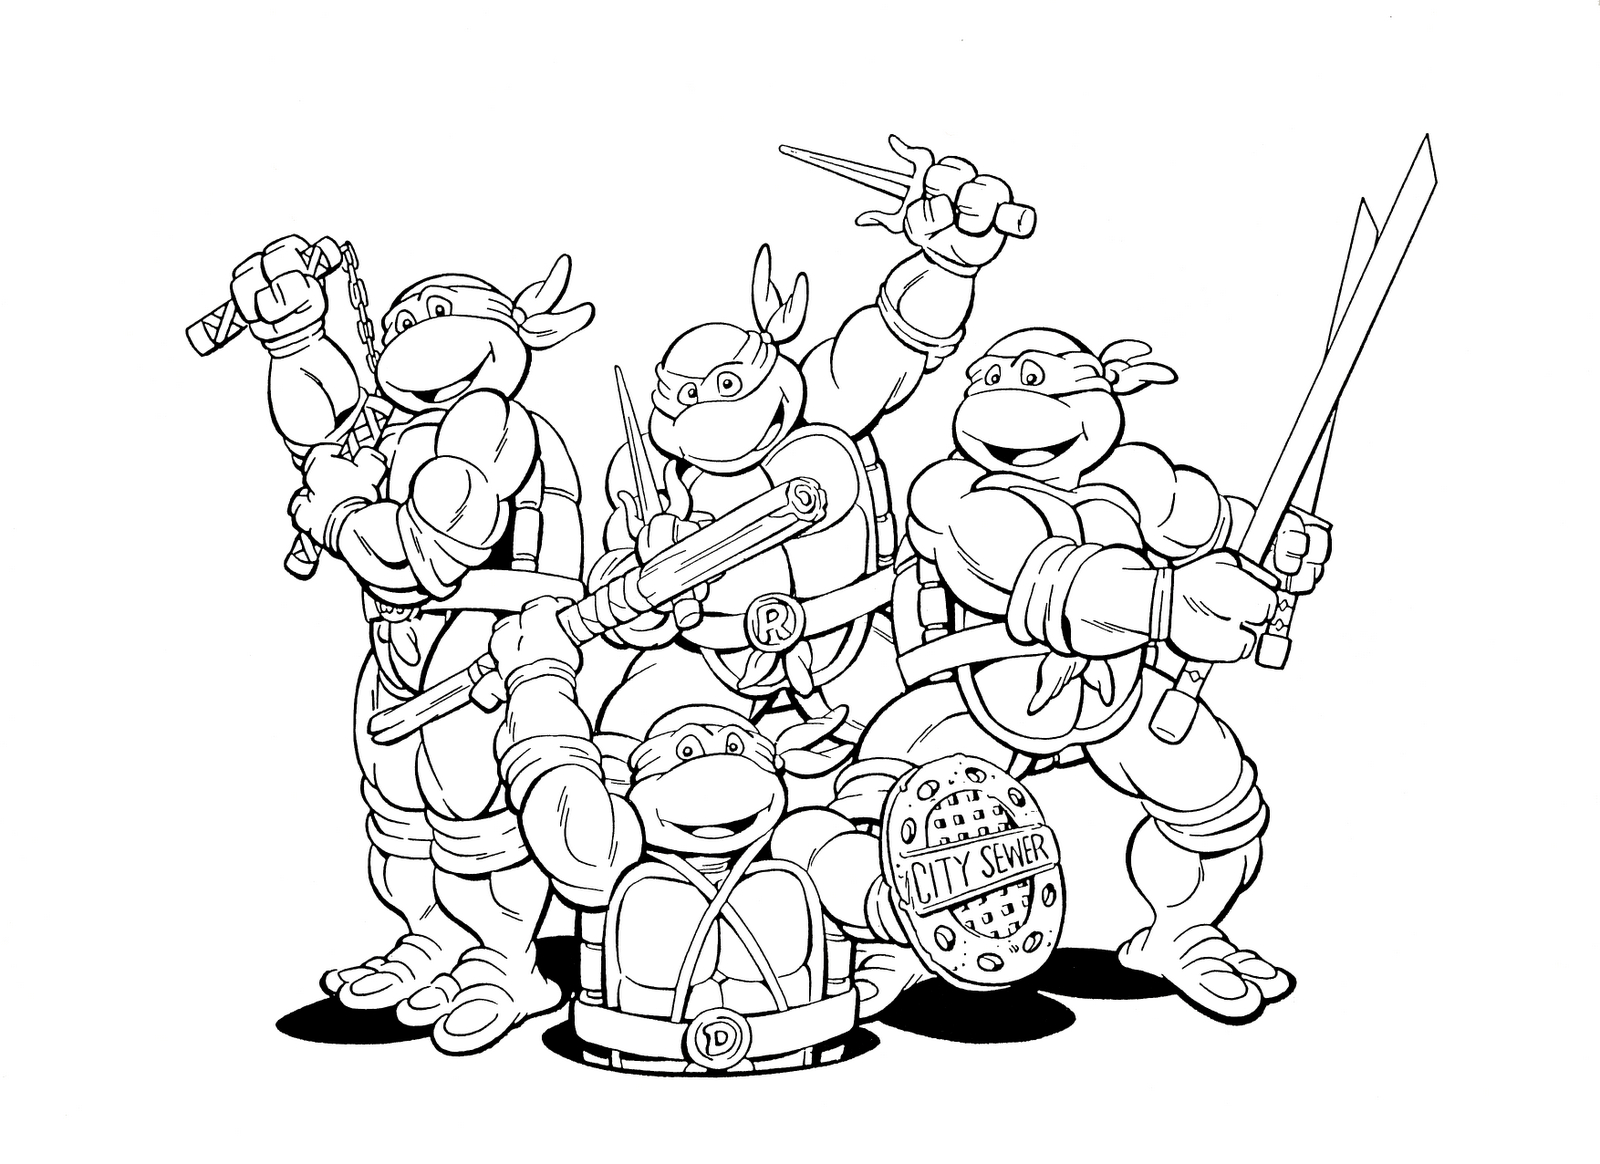 Teenage Mutant Ninja Turtles Coloring Pages - Teenage Mutant Ninja Turtles Free Printable Mask